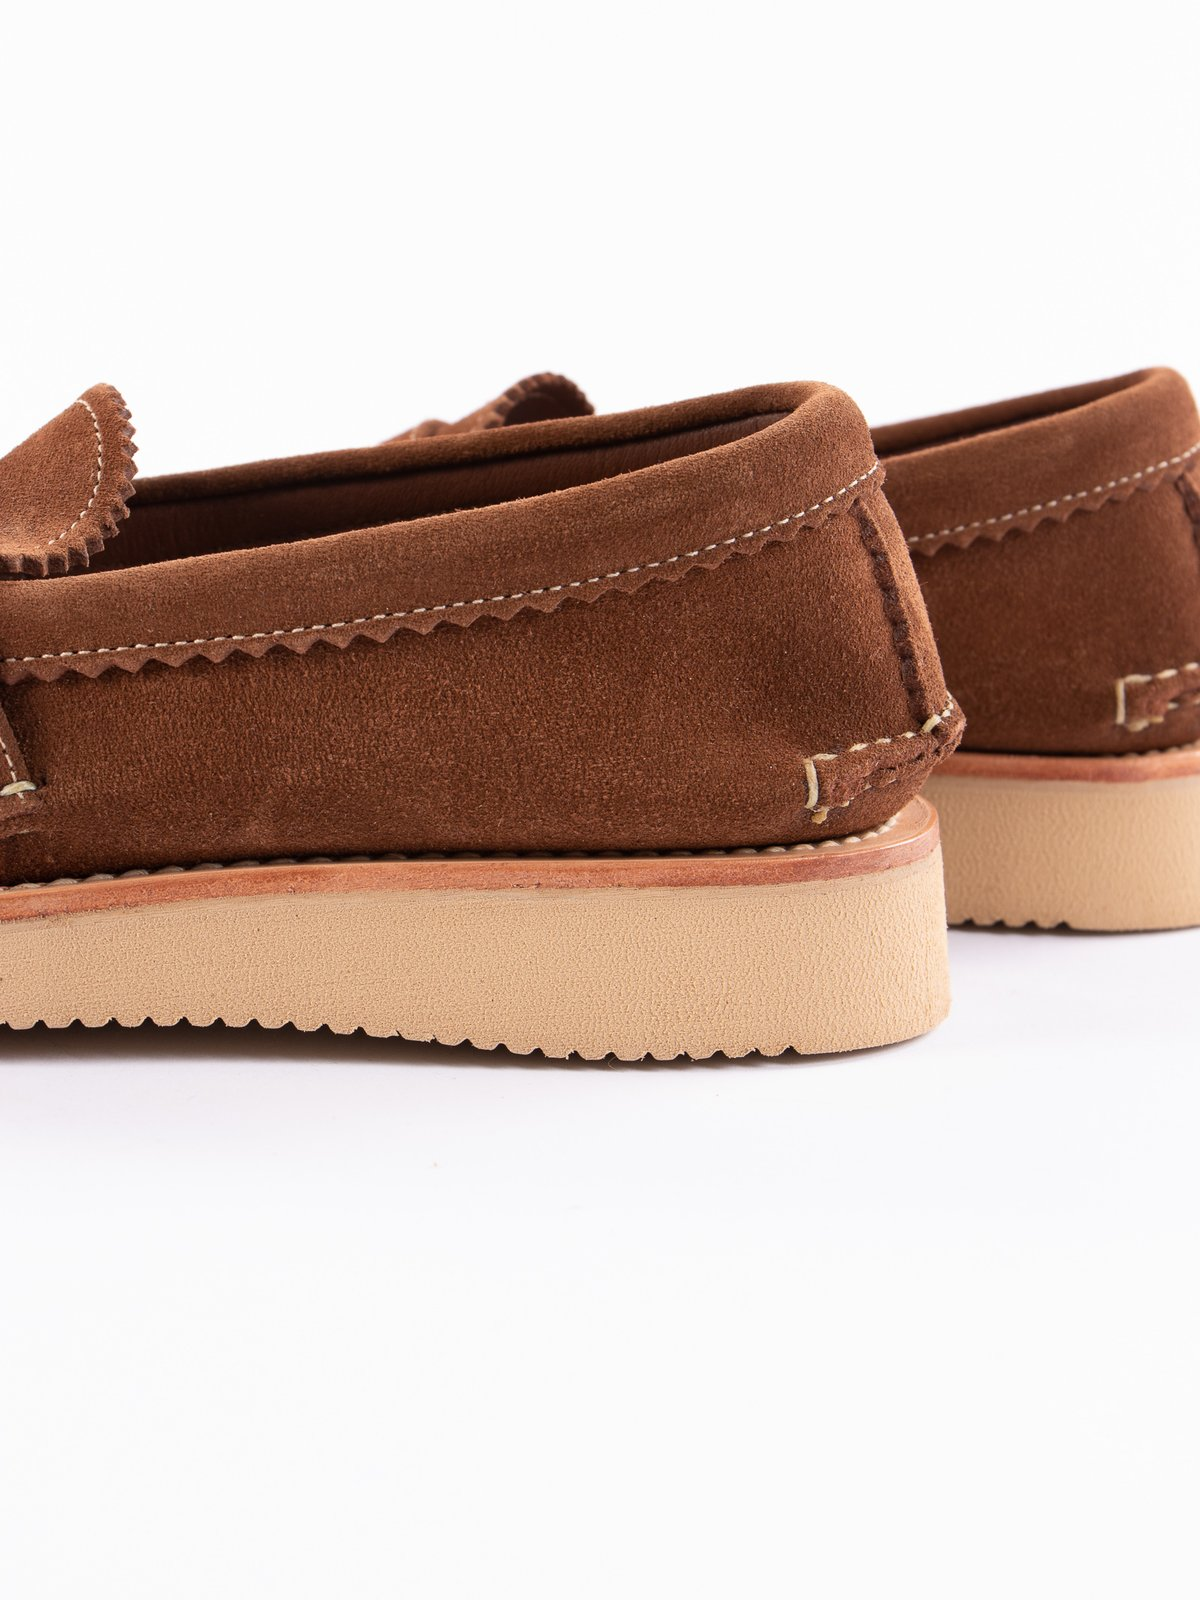 FO Snuff Loafer w/2021 Sole Exclusive - Image 4